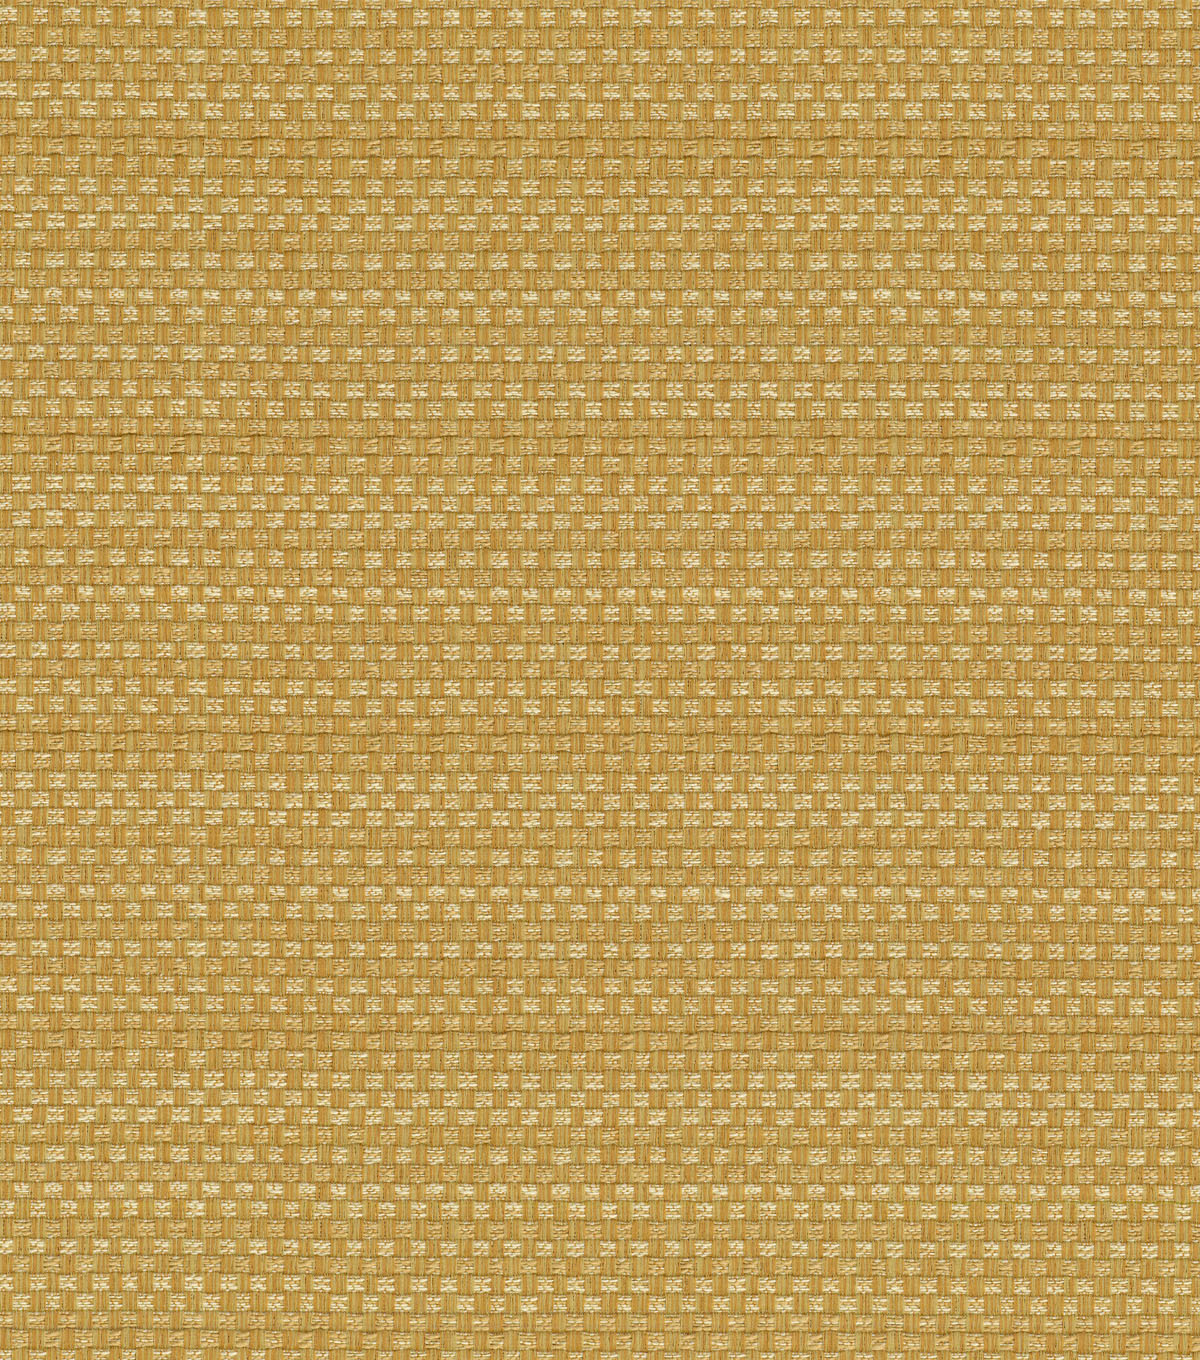 Home Decor 8\u0022x8\u0022 Fabric Swatch-Tommy Bahama Isla Sesame